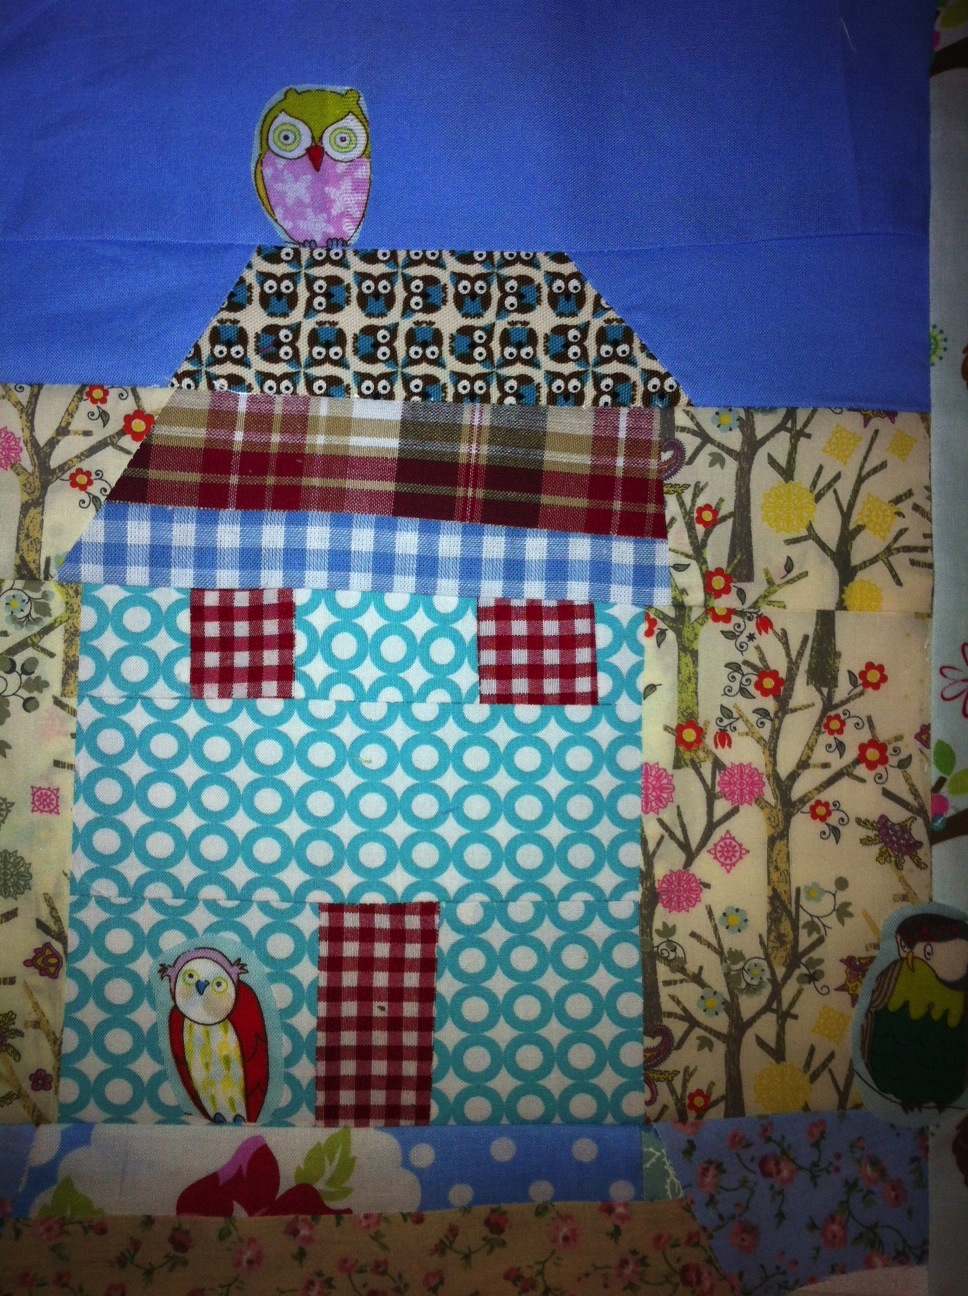 Neighbourly Quilt Block by Jennie Caminada